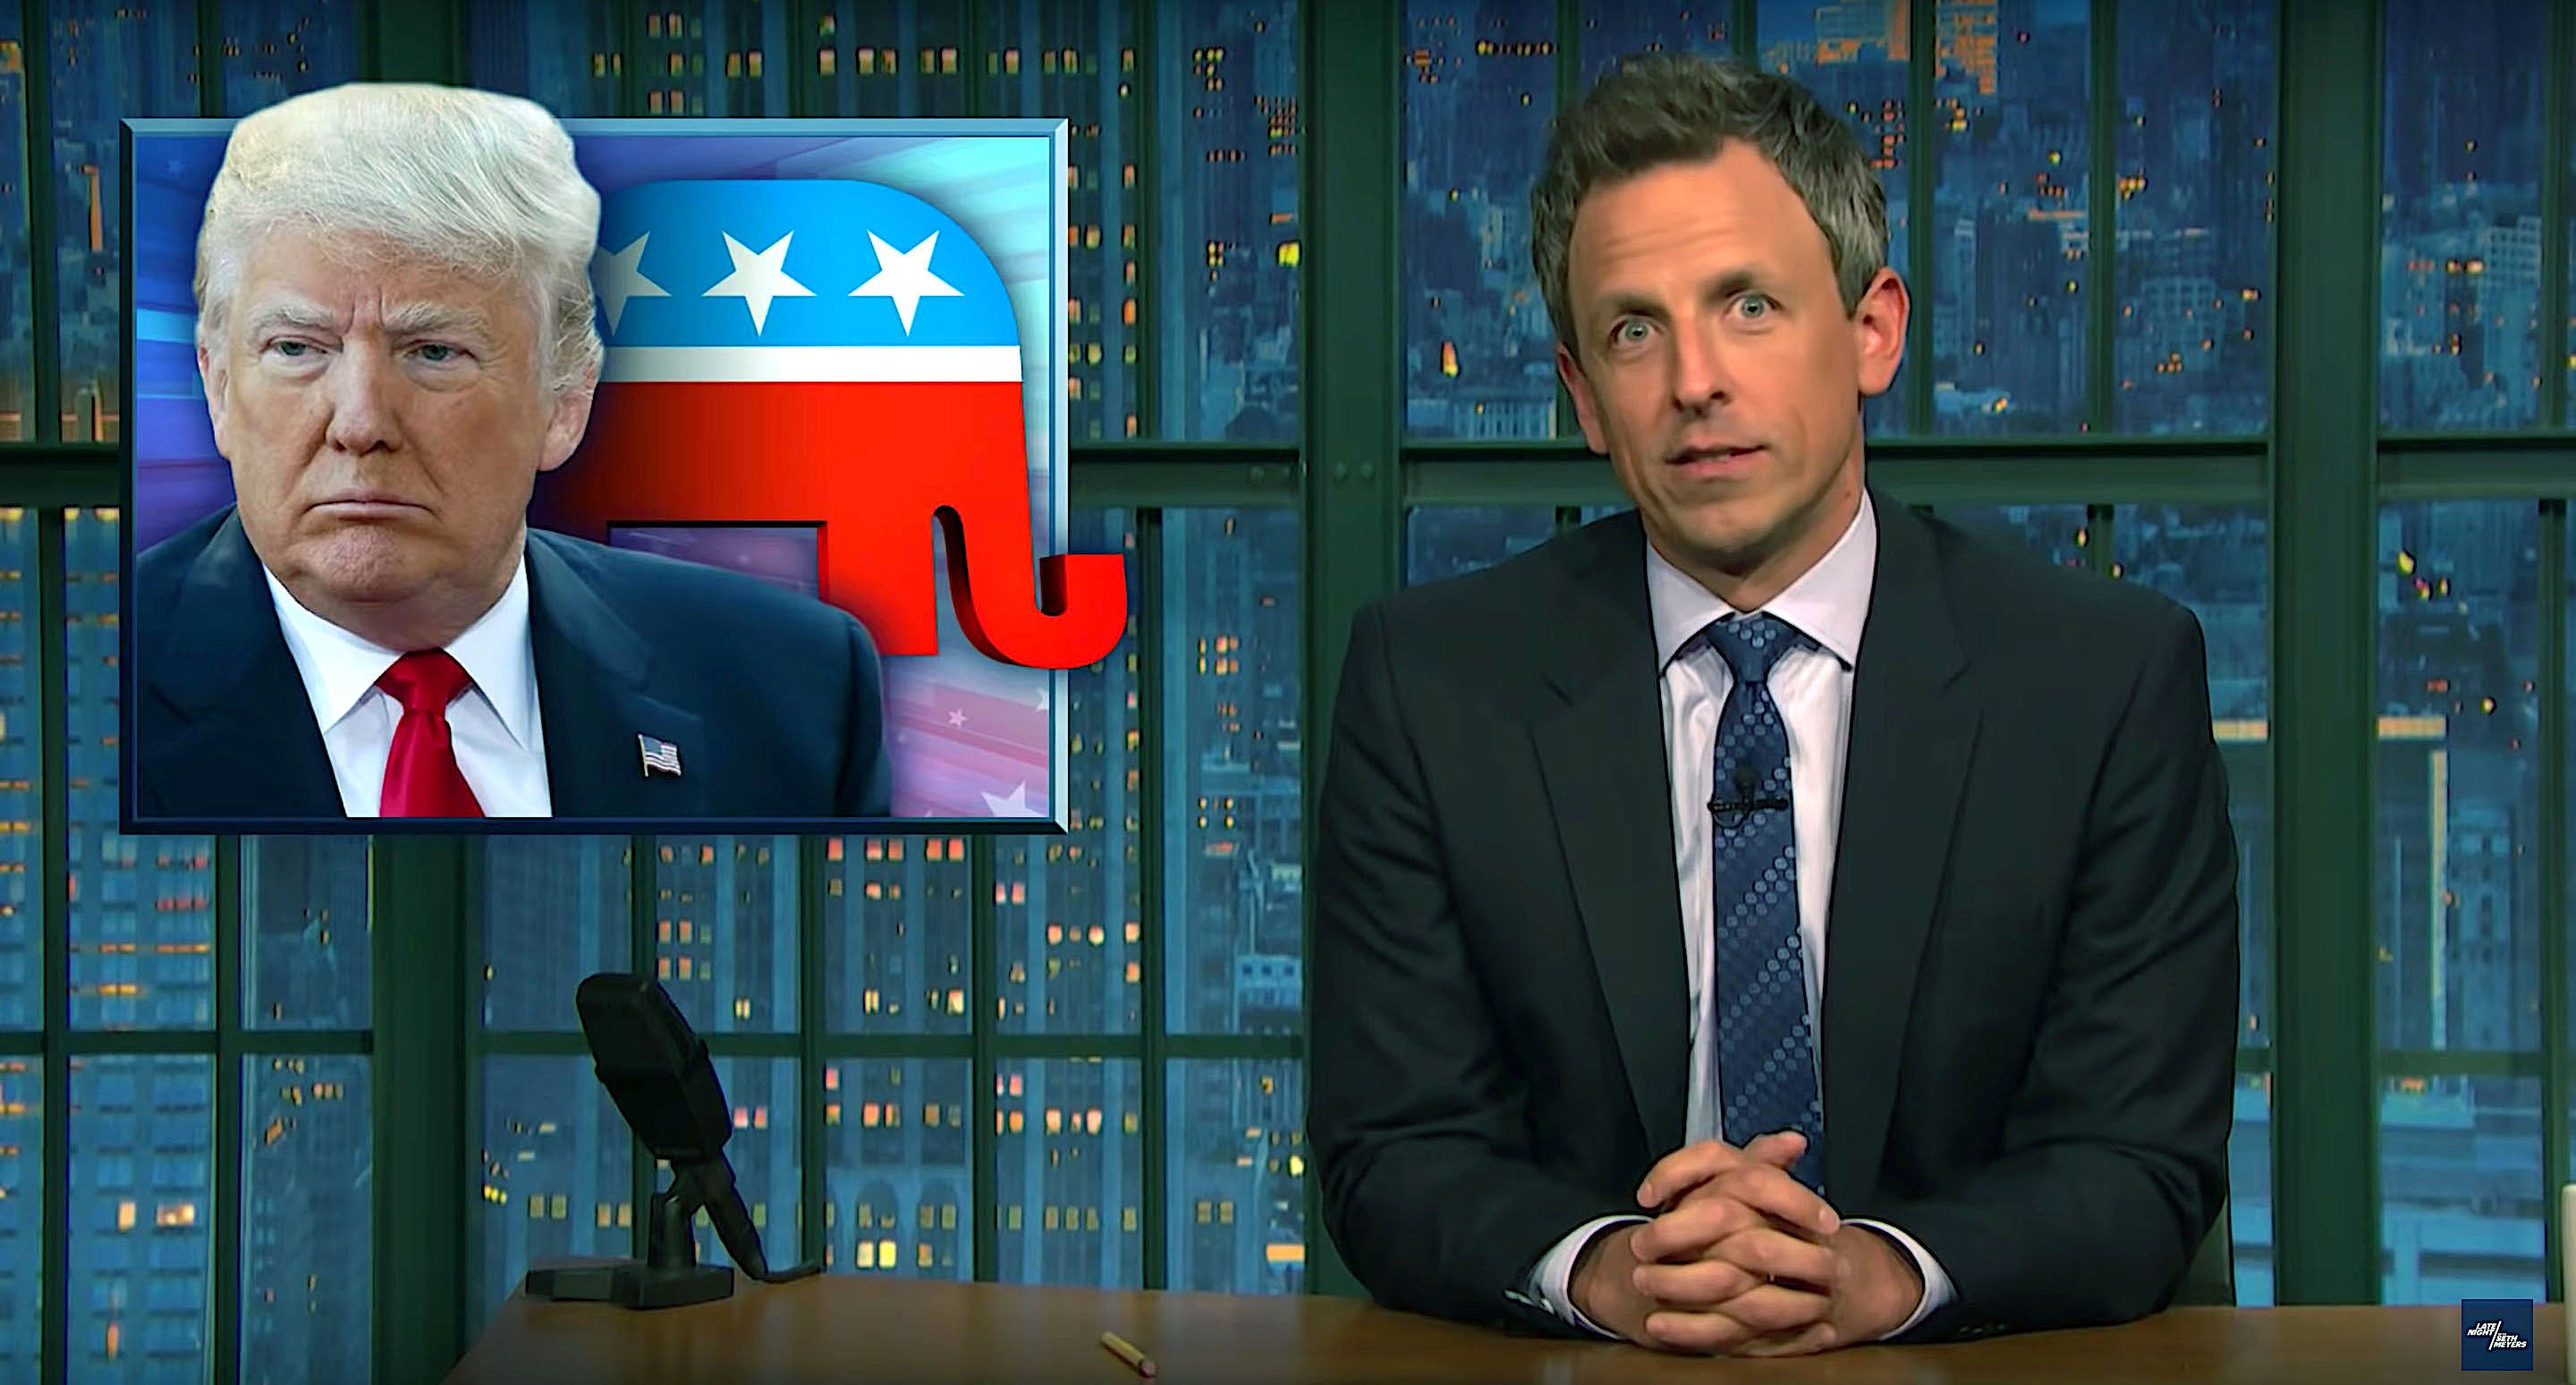 Seth Meyers of Late Night says Americans want wealthy Americans to get wealthier